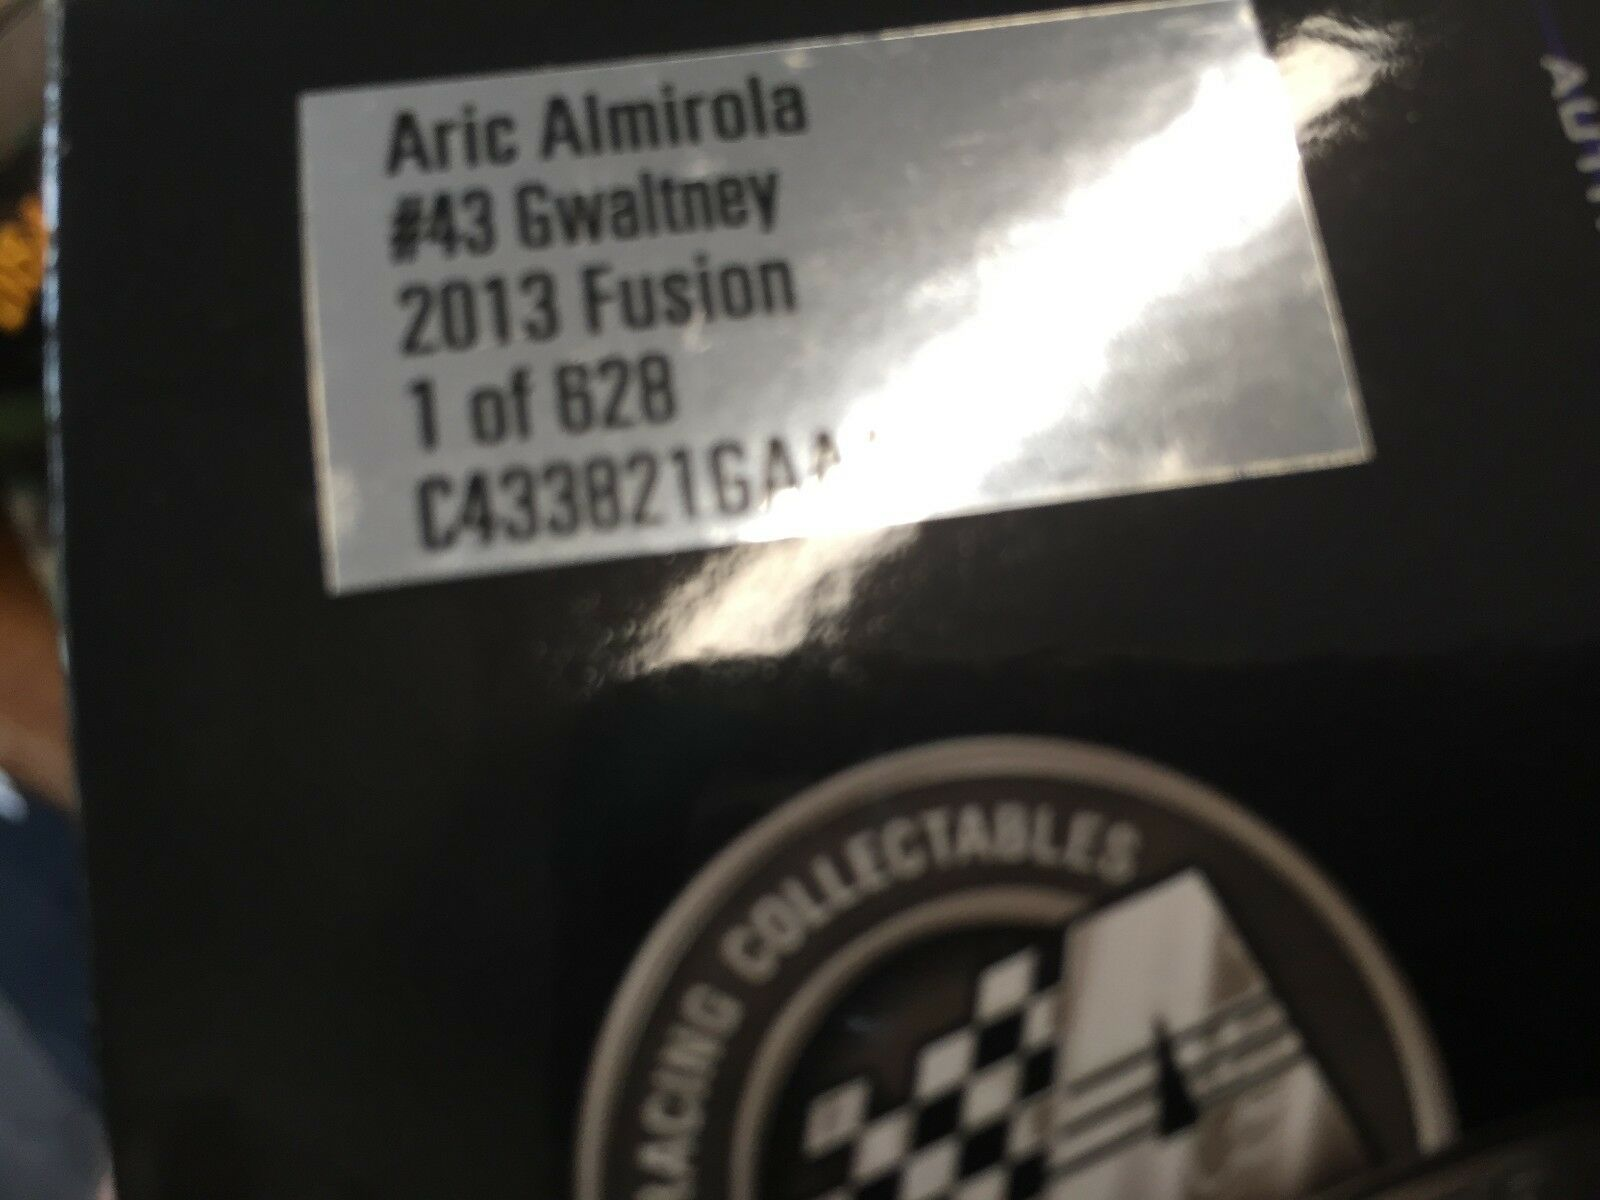 1 24 ACTION Aric Almirola Gwaltney Gwaltney Gwaltney 1 of 628 Ford Fusion 04dd98